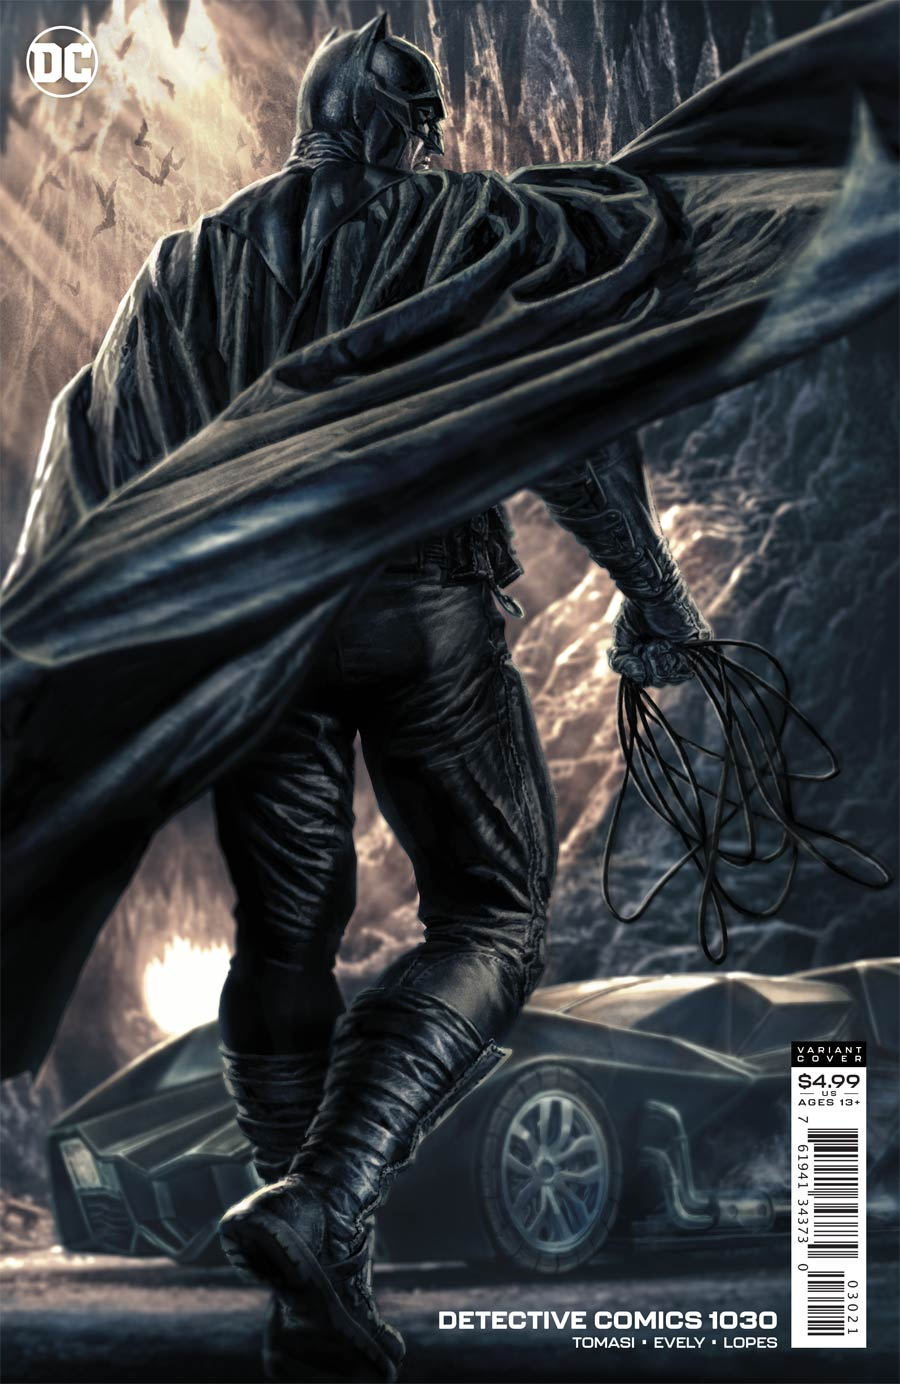 Detective Comics Vol 2 #1030 Cover B Variant Lee Bermejo Card Stock Cover